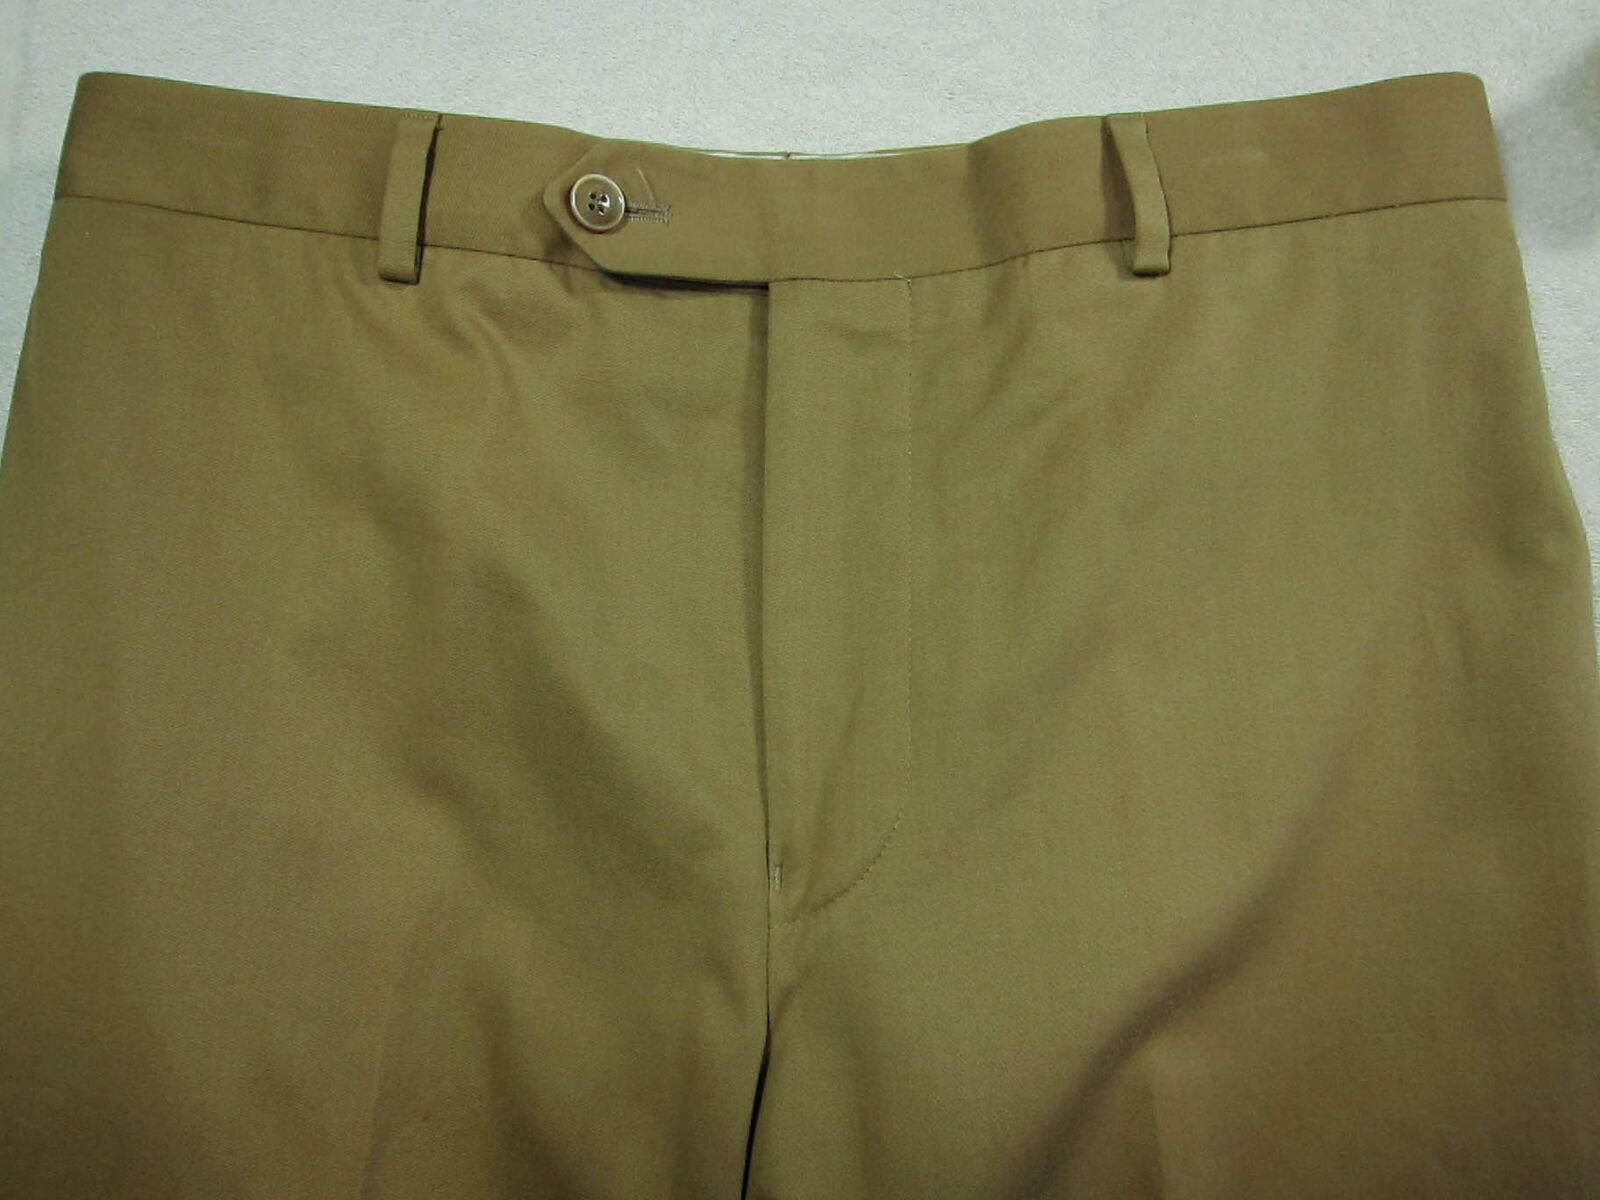 GORGEOUS Samuelsohn Light Brown Cotton & Cashmere Flat Dress Pants 32x28 32W